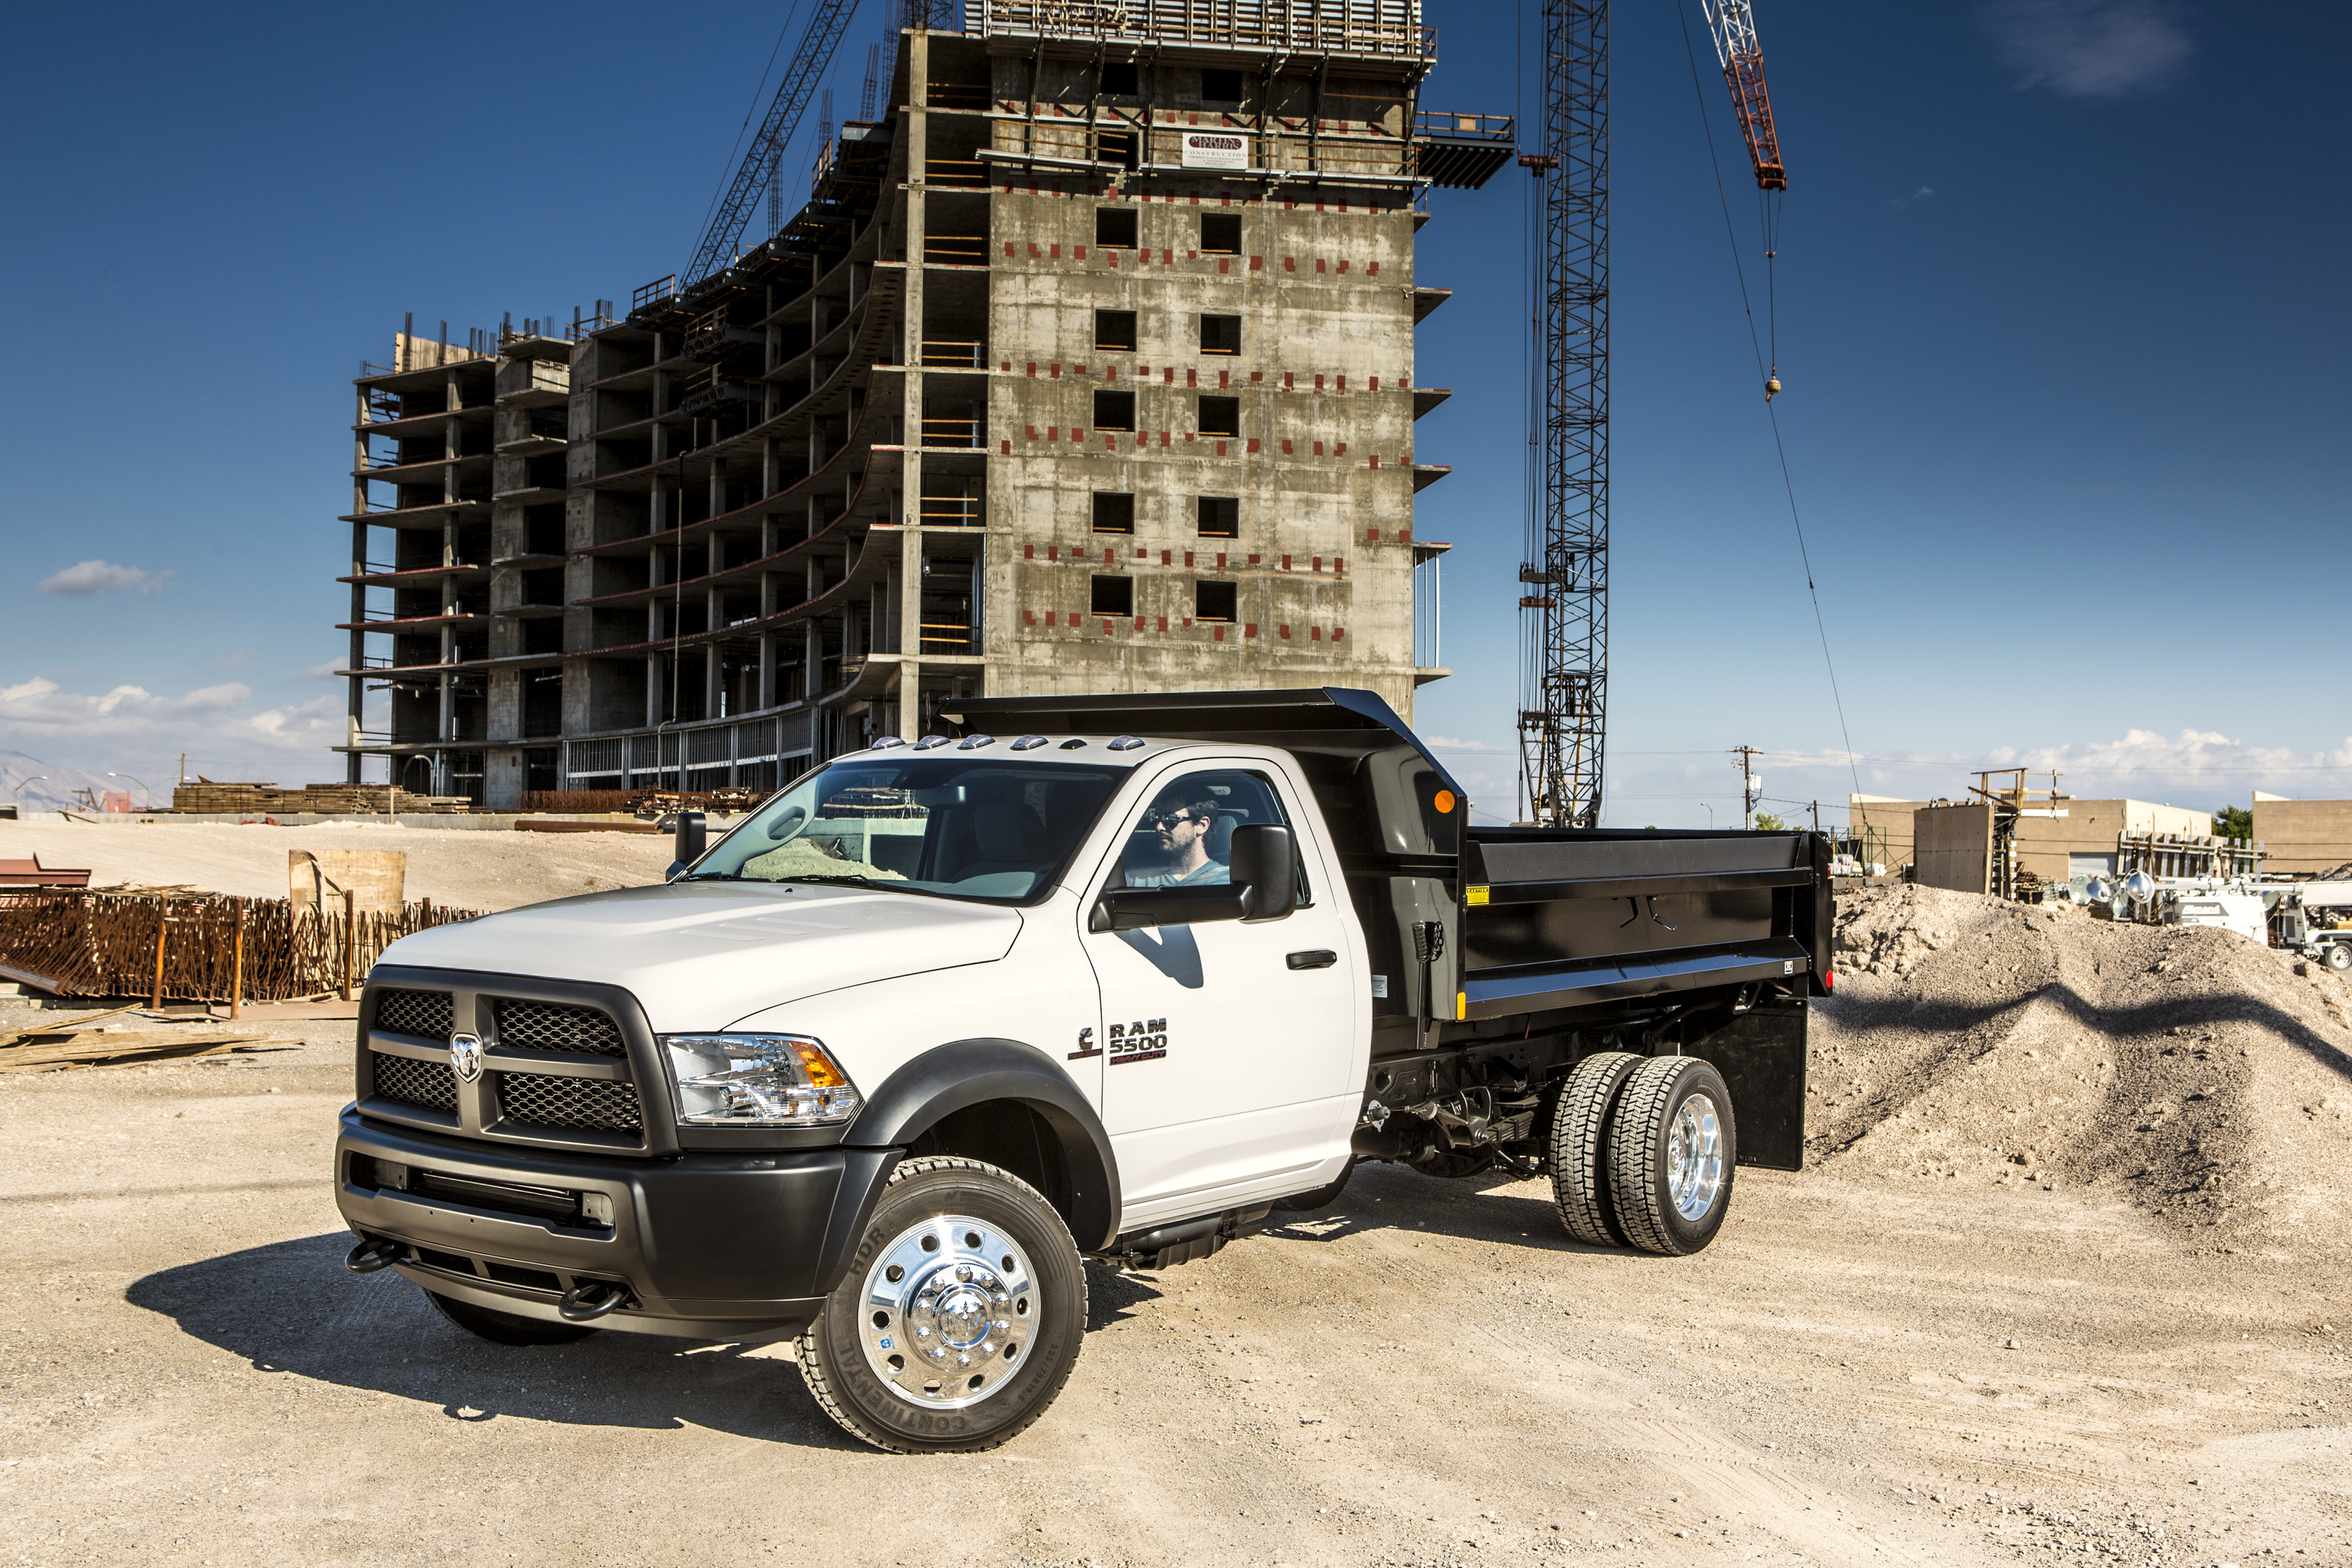 2014 Ram 4500/5500 Chassis Cab | Top Speed. »